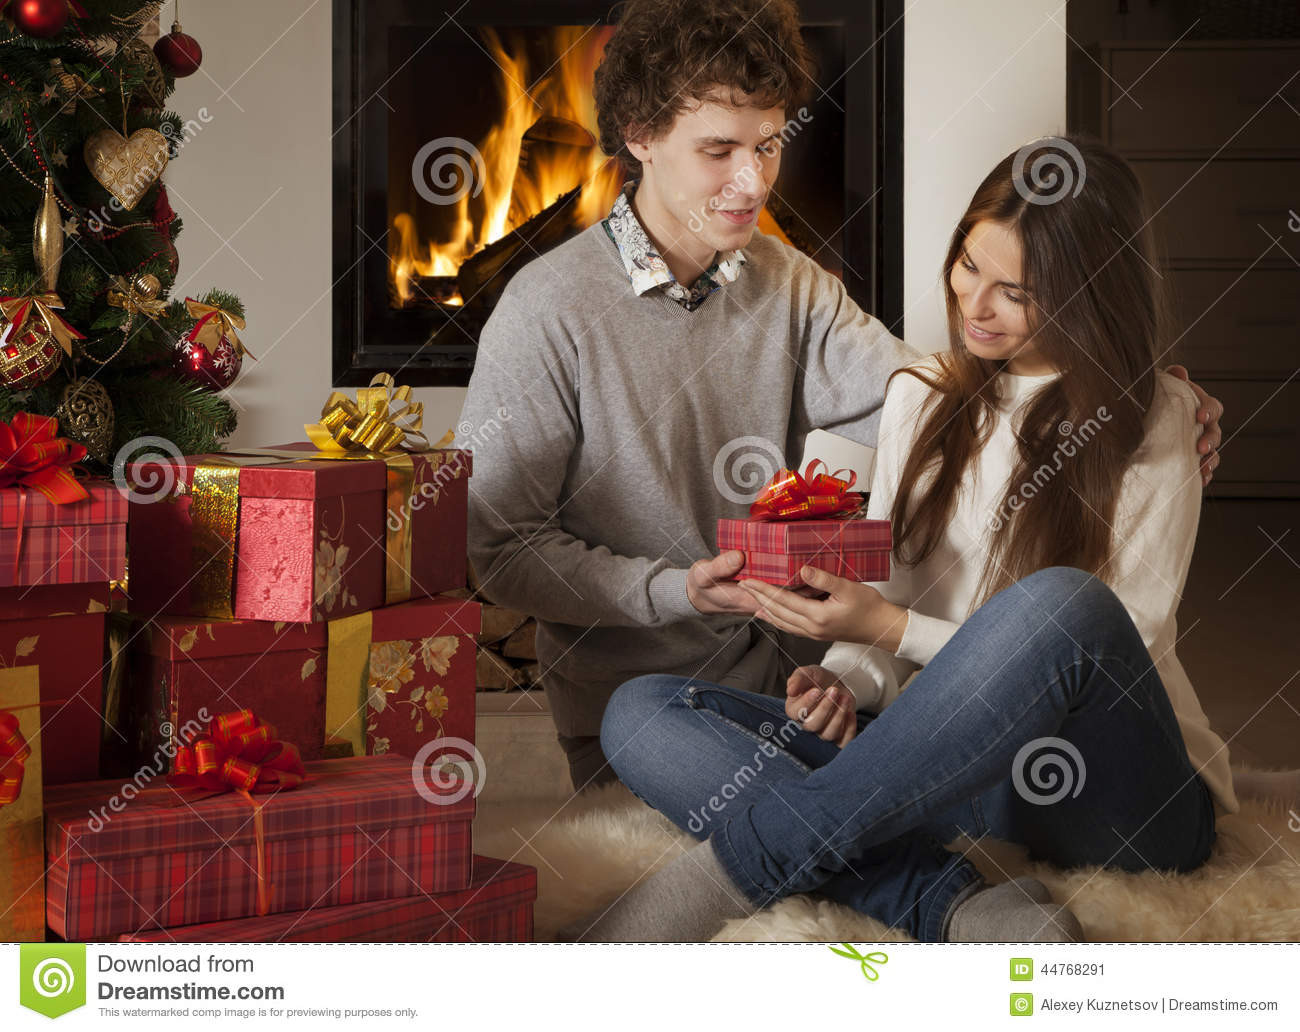 Best ideas about Christmas Gift Ideas For Young Couples . Save or Pin Young Couple With Christmas Presents Stock Image Now.